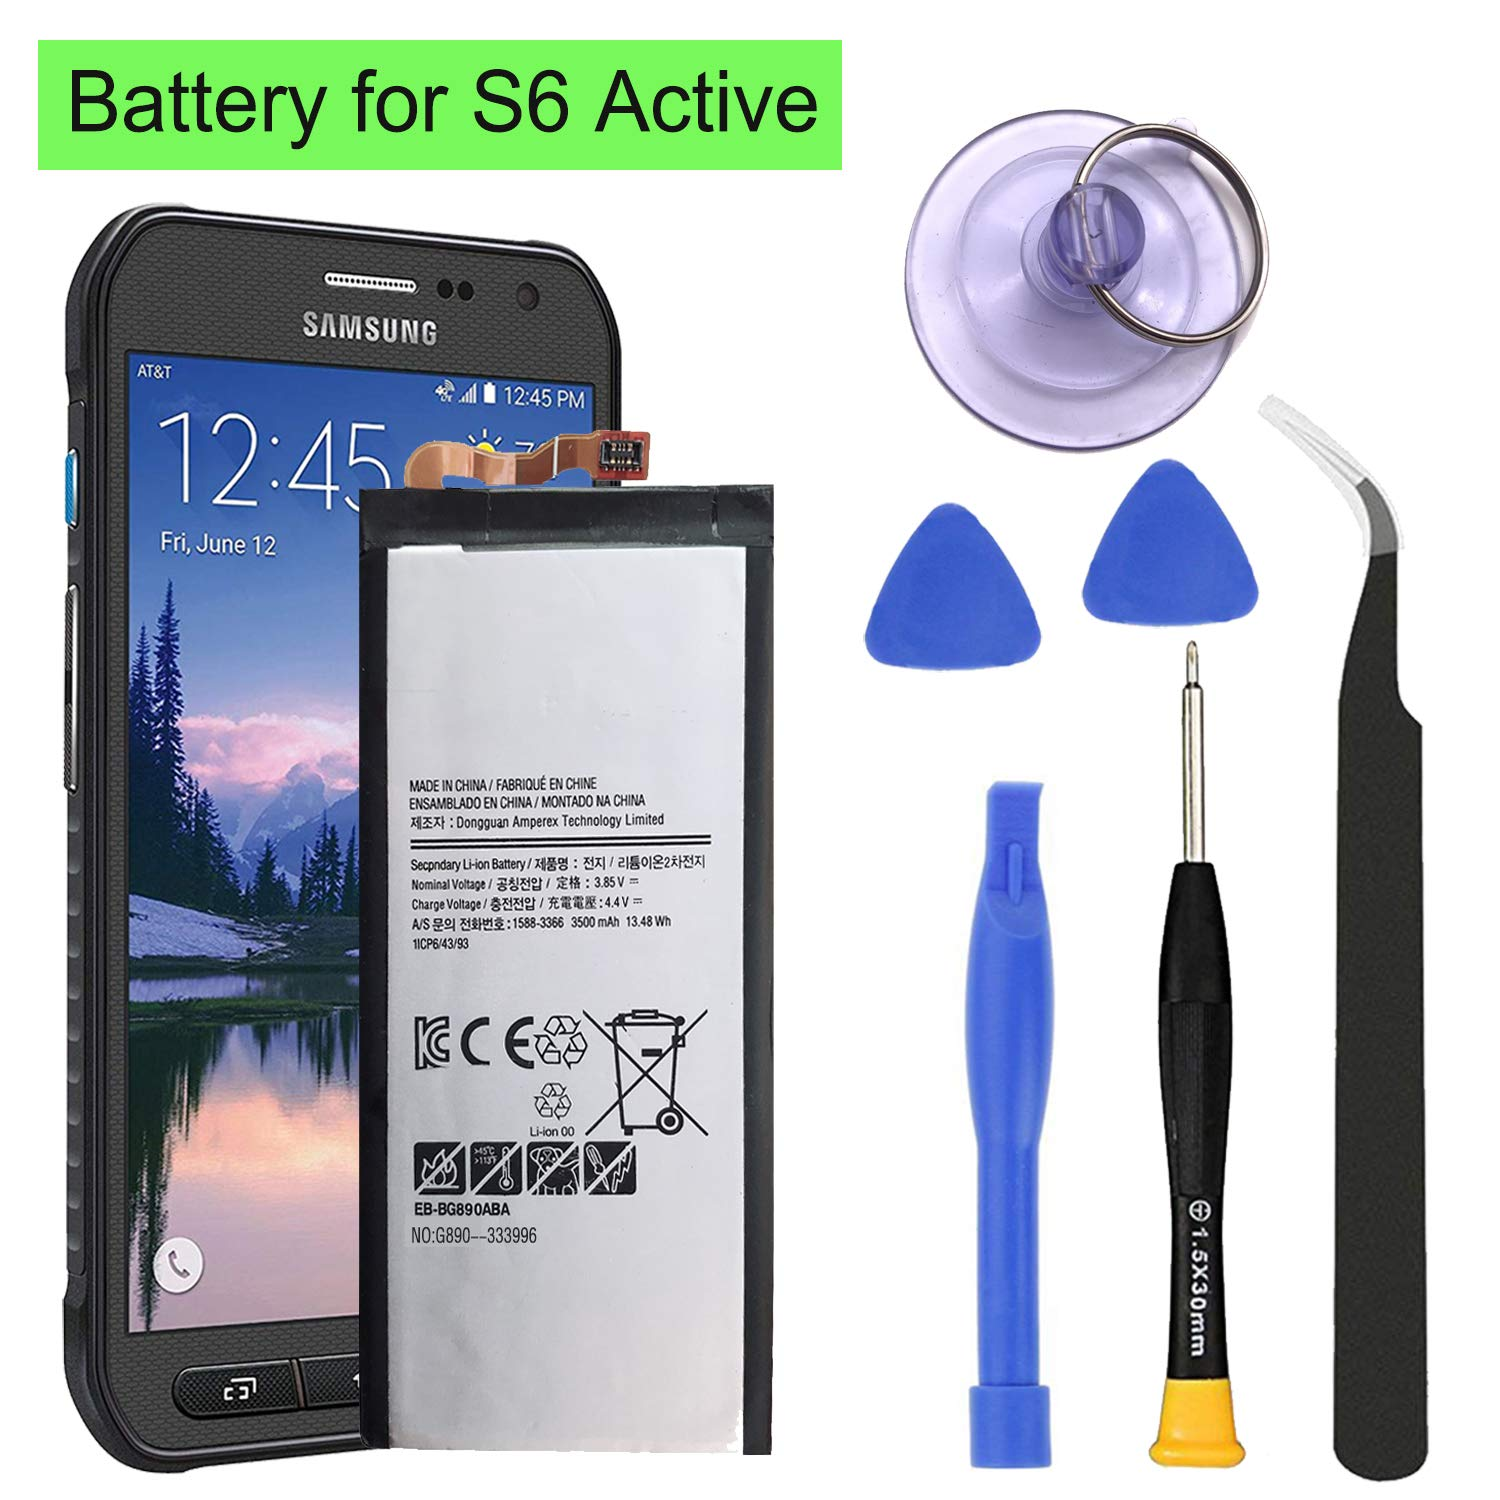 HDCKU S6 Active Battery Replacement Kit for Samsung Galaxy S6 Active G890 G890A EB-BG890ABA Battery 3500mAh 1 Year Warranty by HDCKU